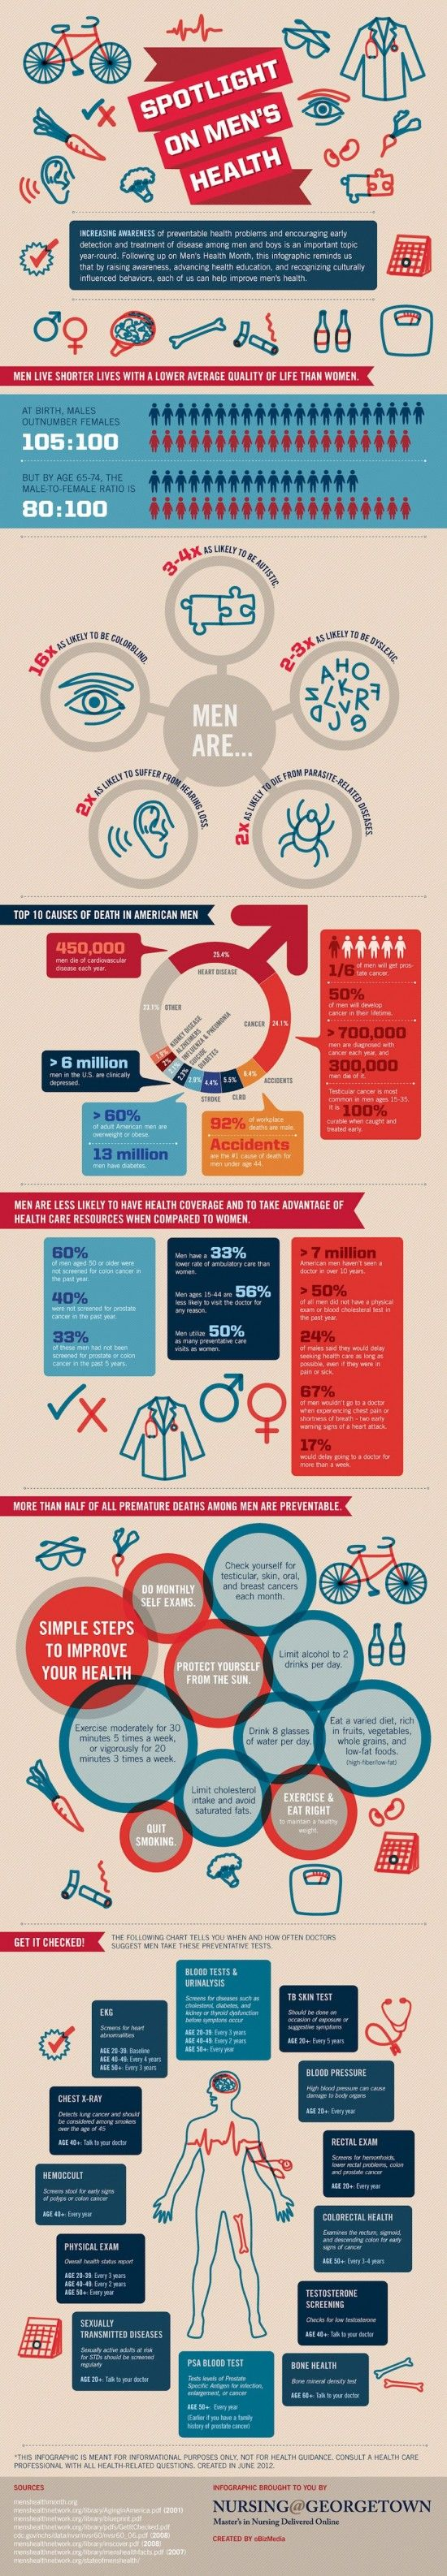 #Infographic: Spotlight on Men's #Health - When was the last time you visited your physician?